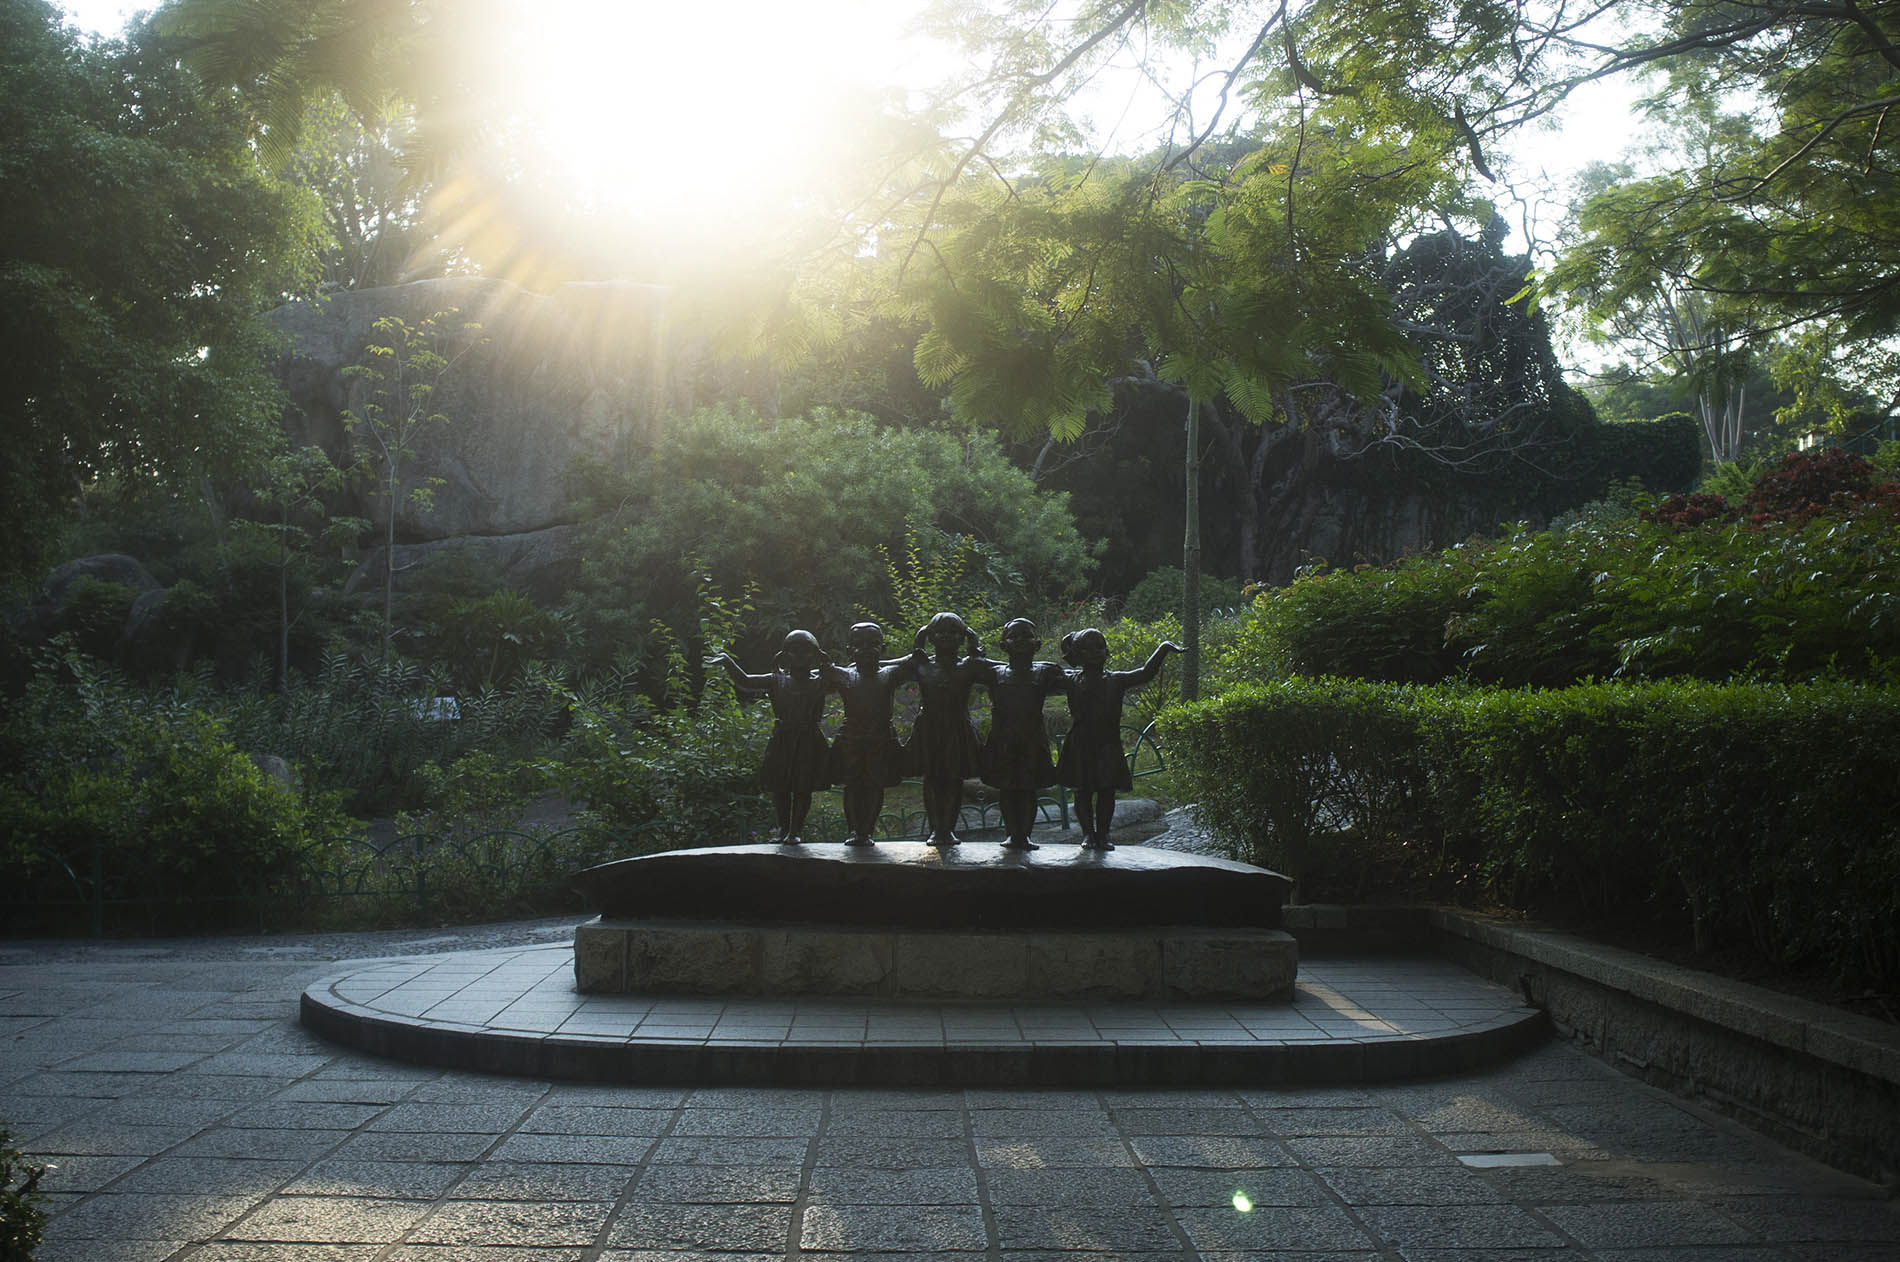 Statue of five children, which represents relations between the five continents.